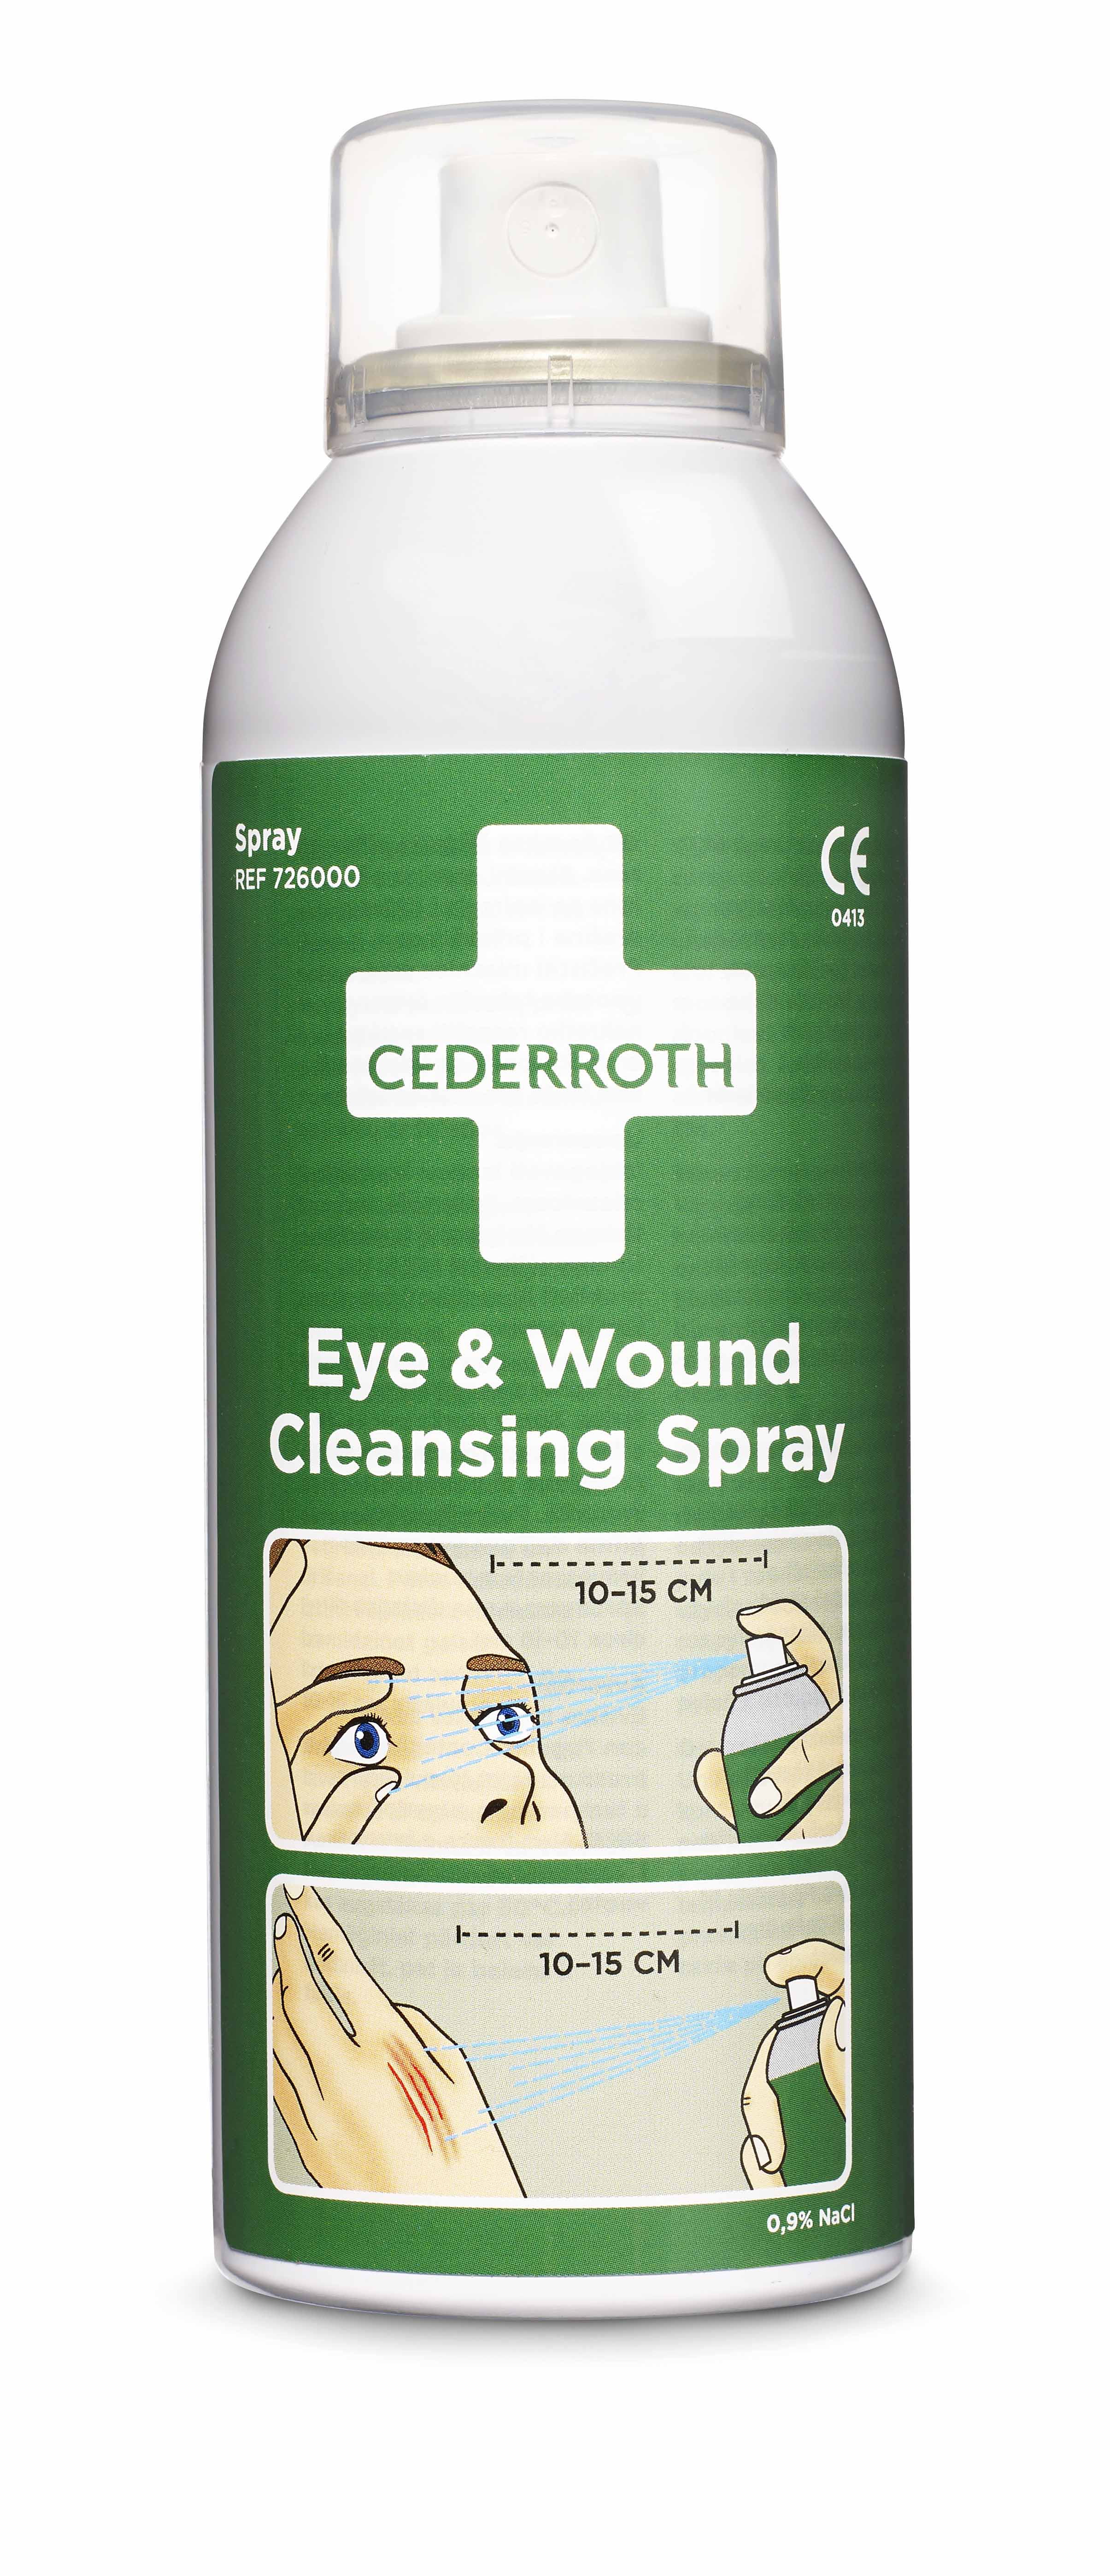 Eye and Wound Cleansing Spray_300dpi